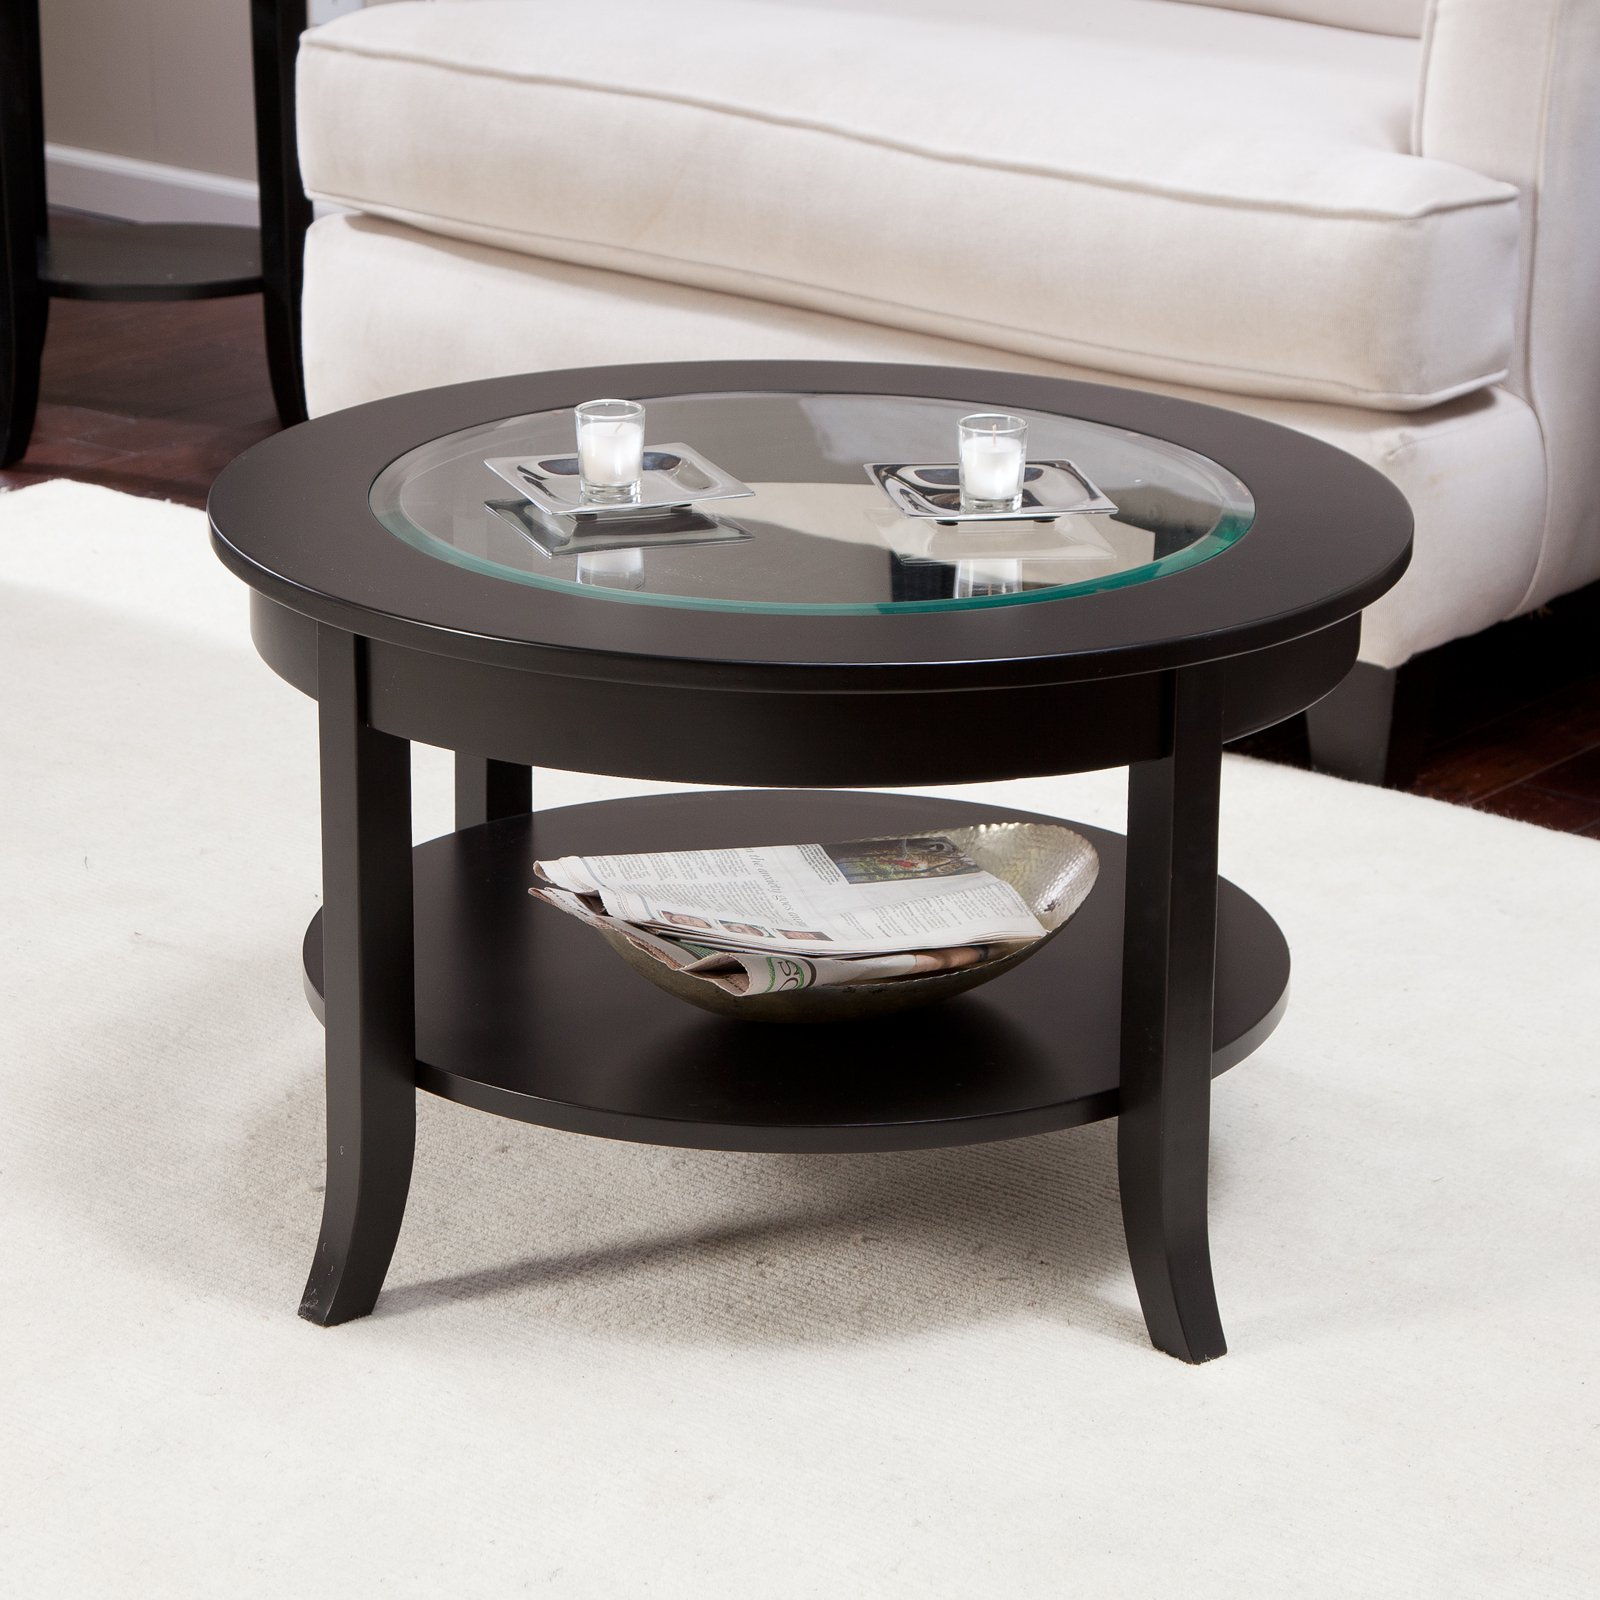 Glass Coffee Tables On Sale Console Tables All Narcissist And Nemesis Family Beautiful Interior Furniture Design (Image 2 of 10)